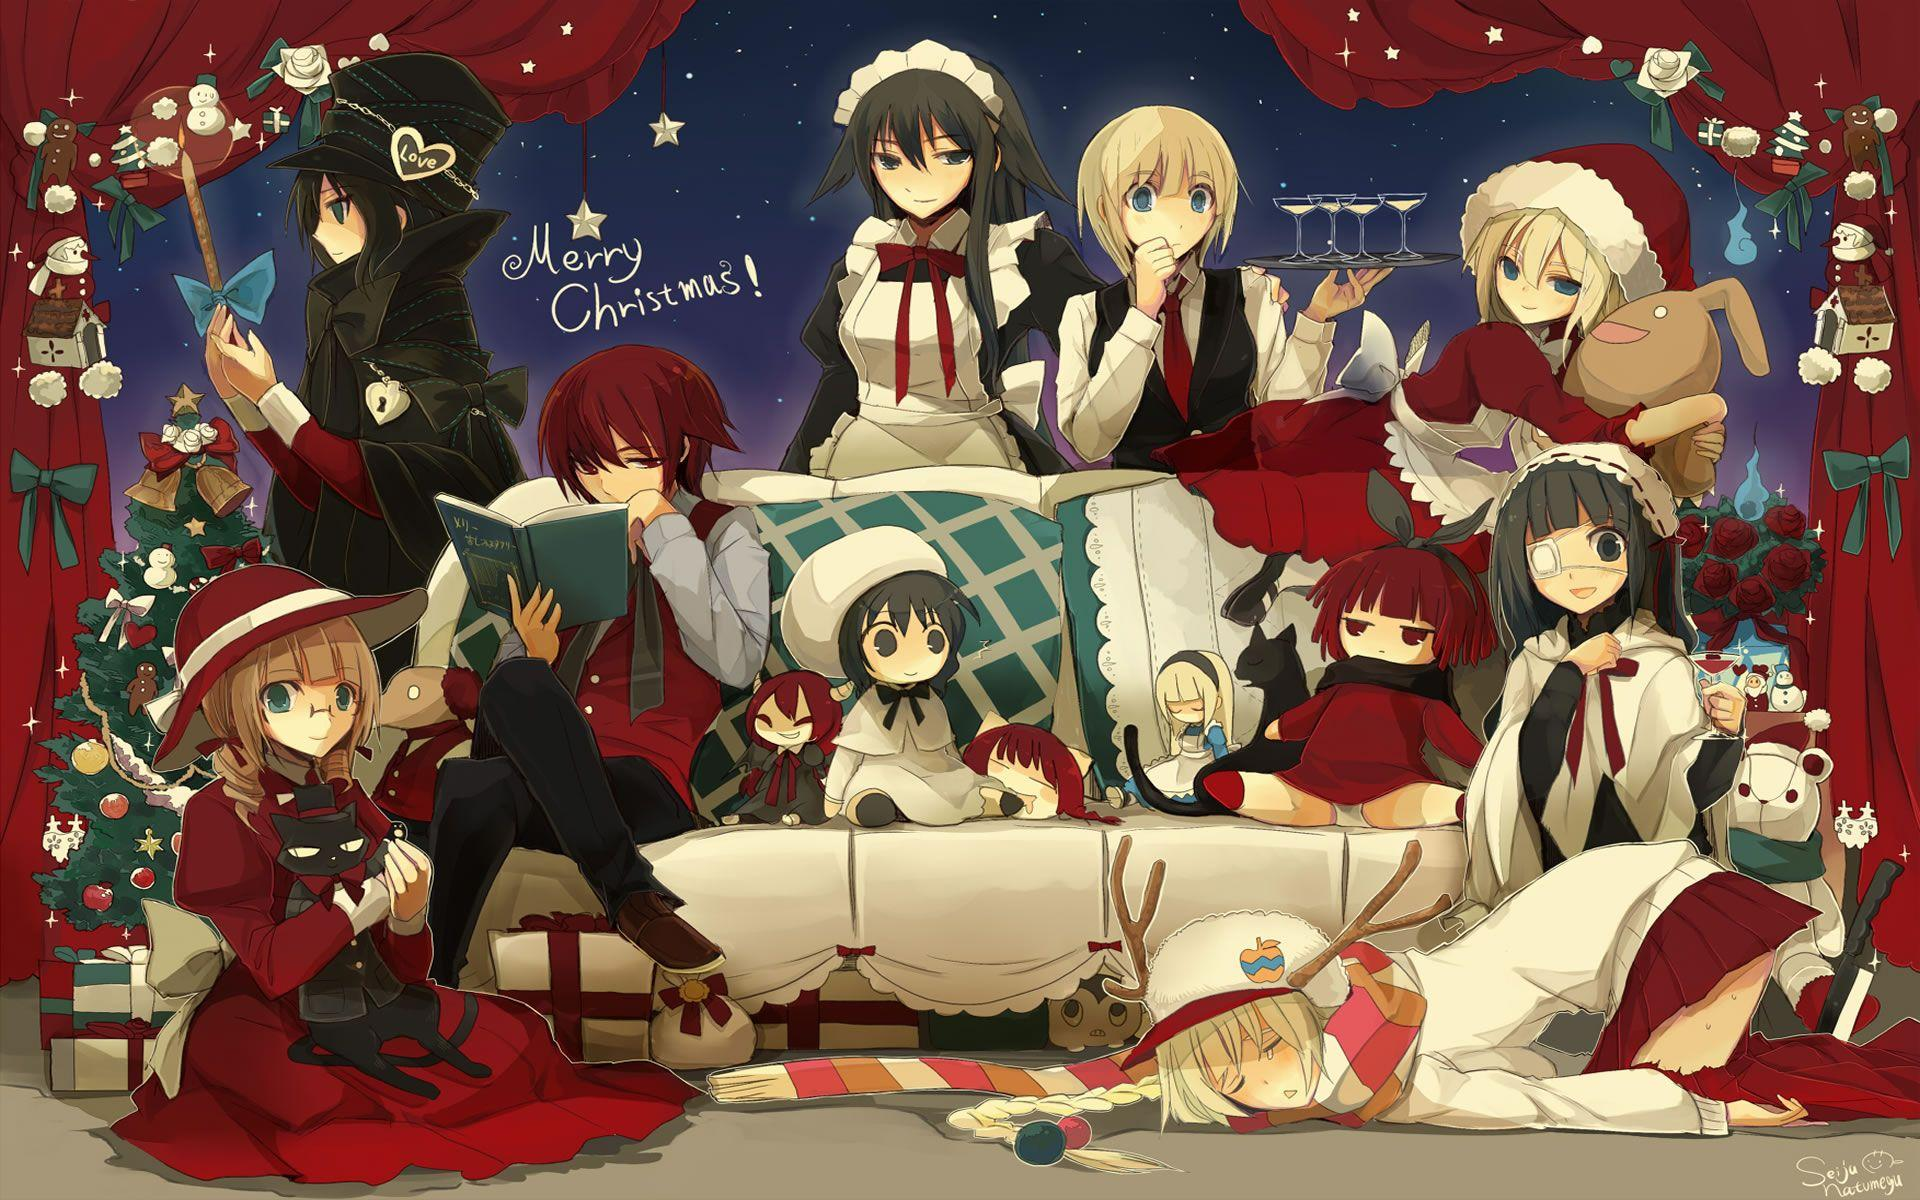 Anime Merry Christmas.Christmas Anime Wallpapers Wallpaper Cave